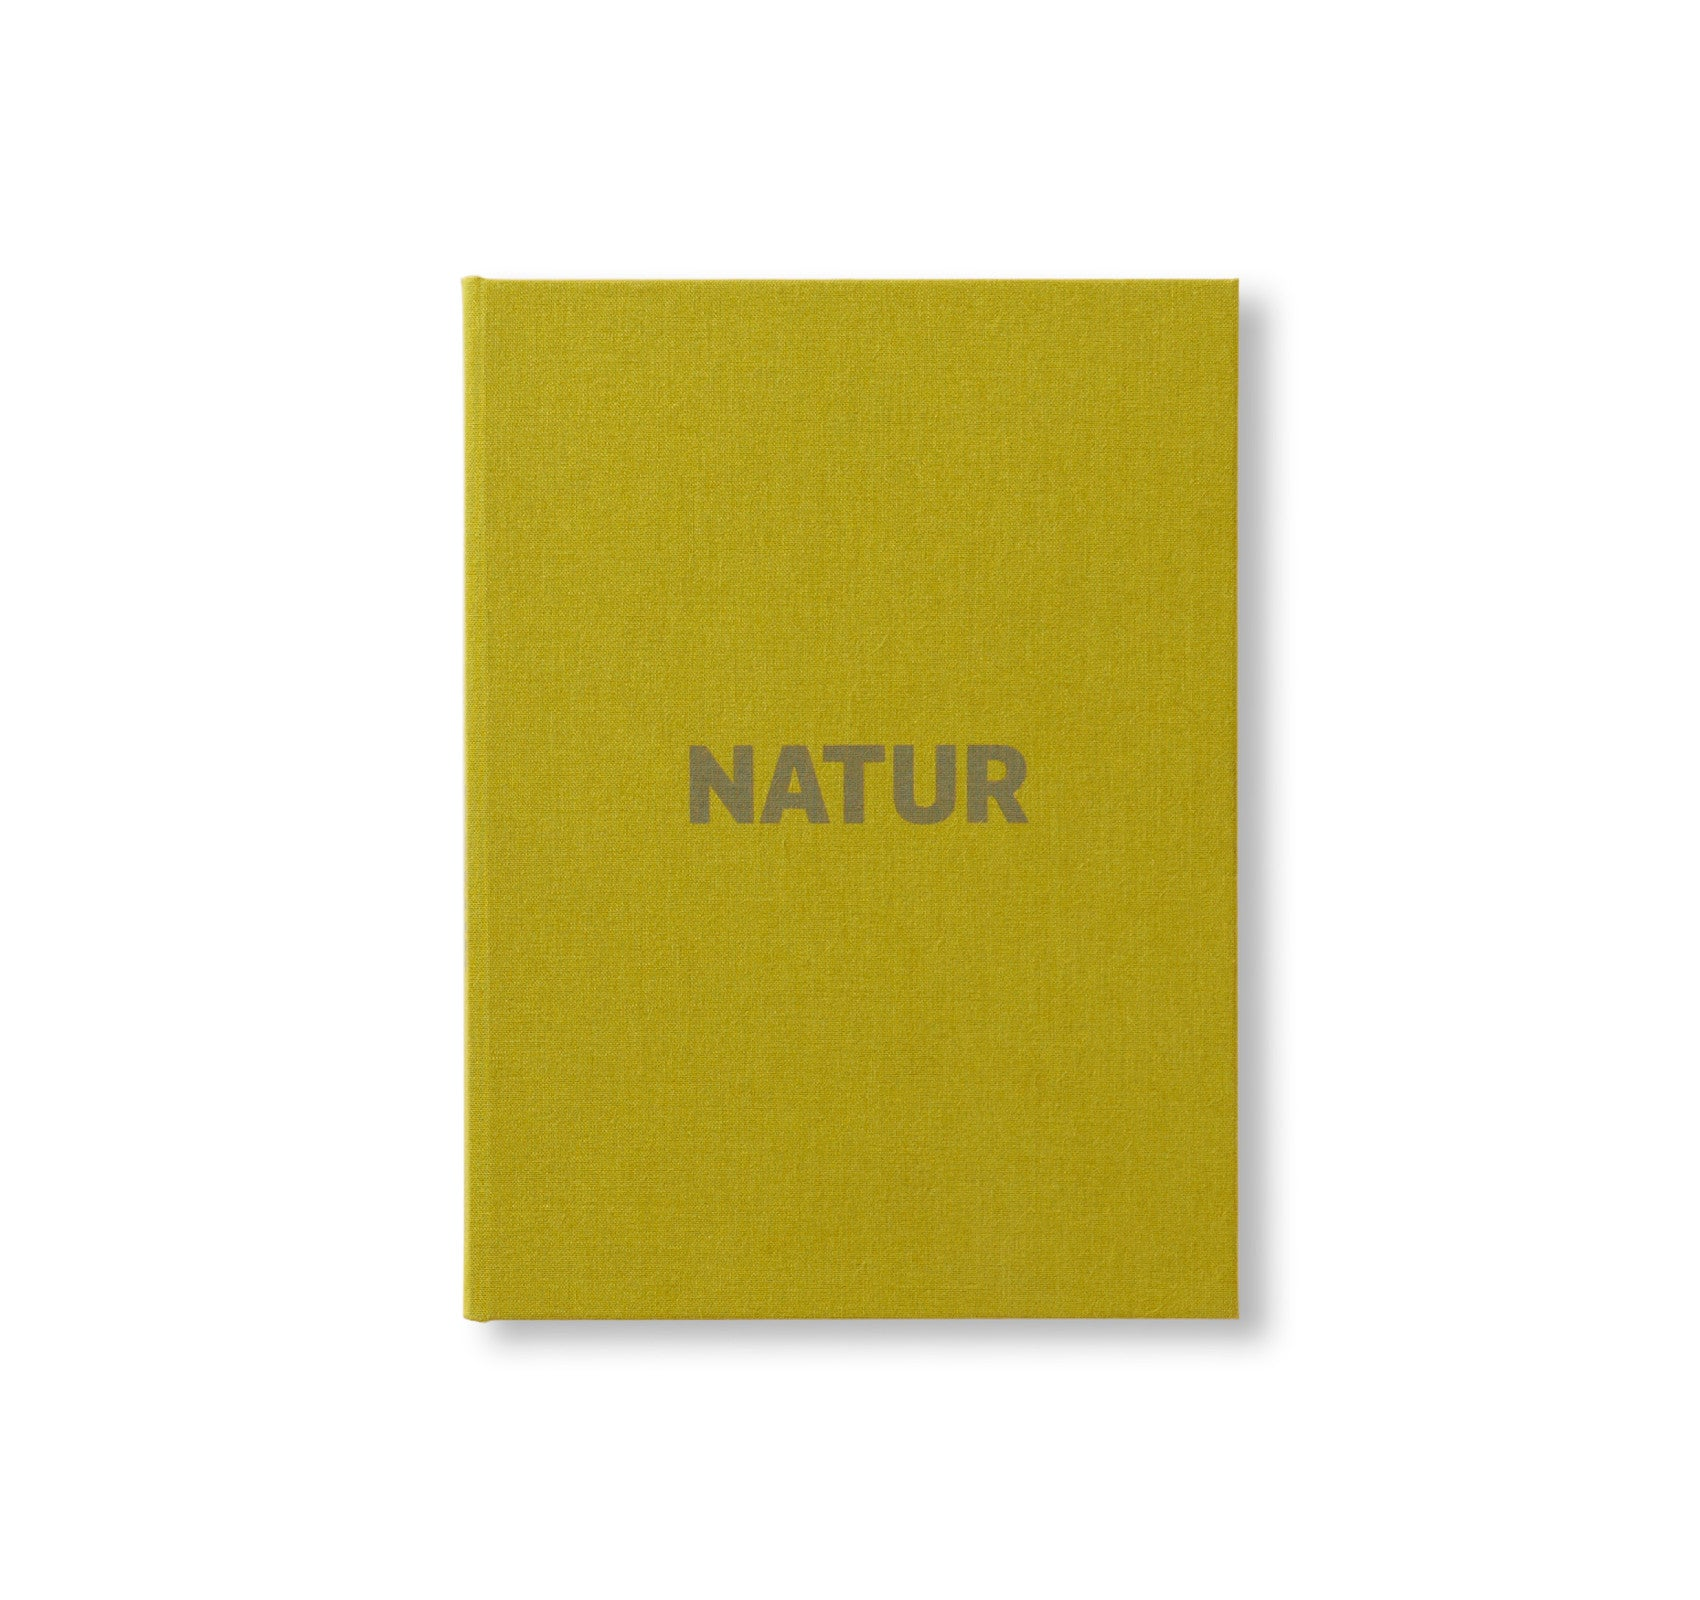 NATUR by Michael Schmidt